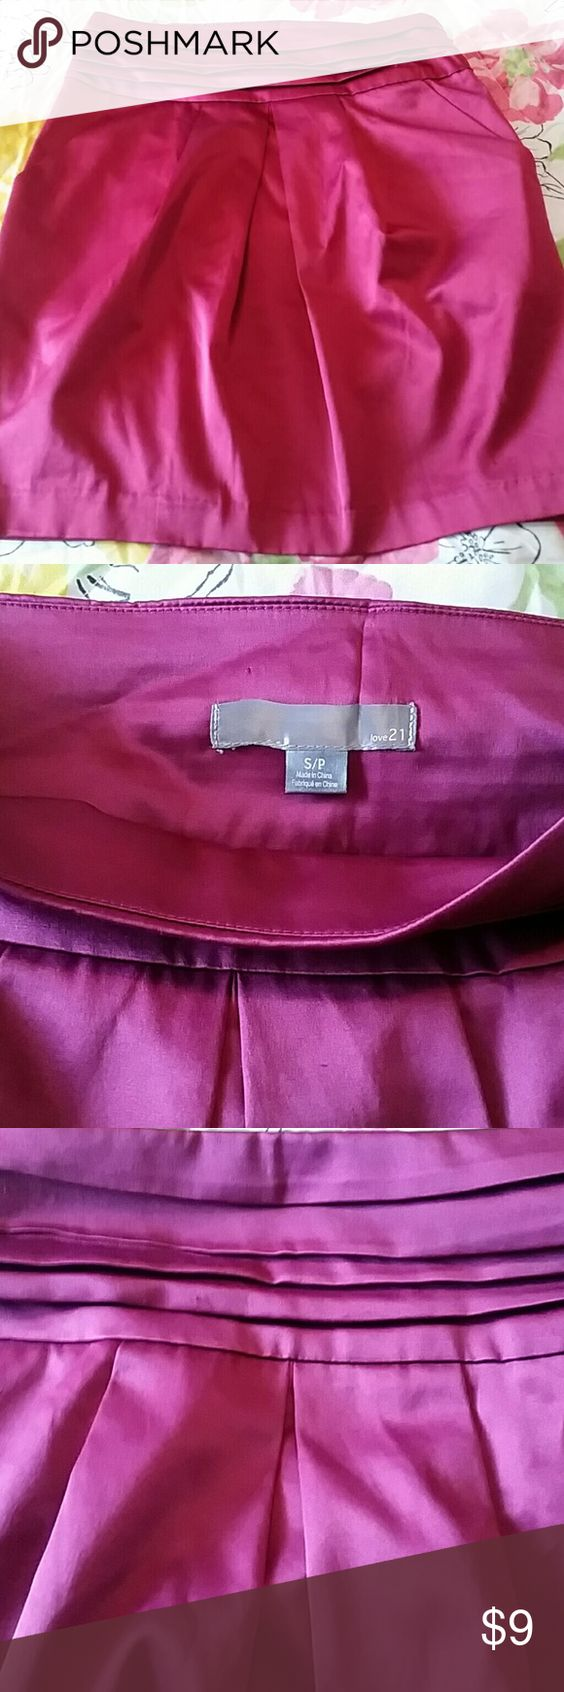 Sexy magenta skirt Good condition Other